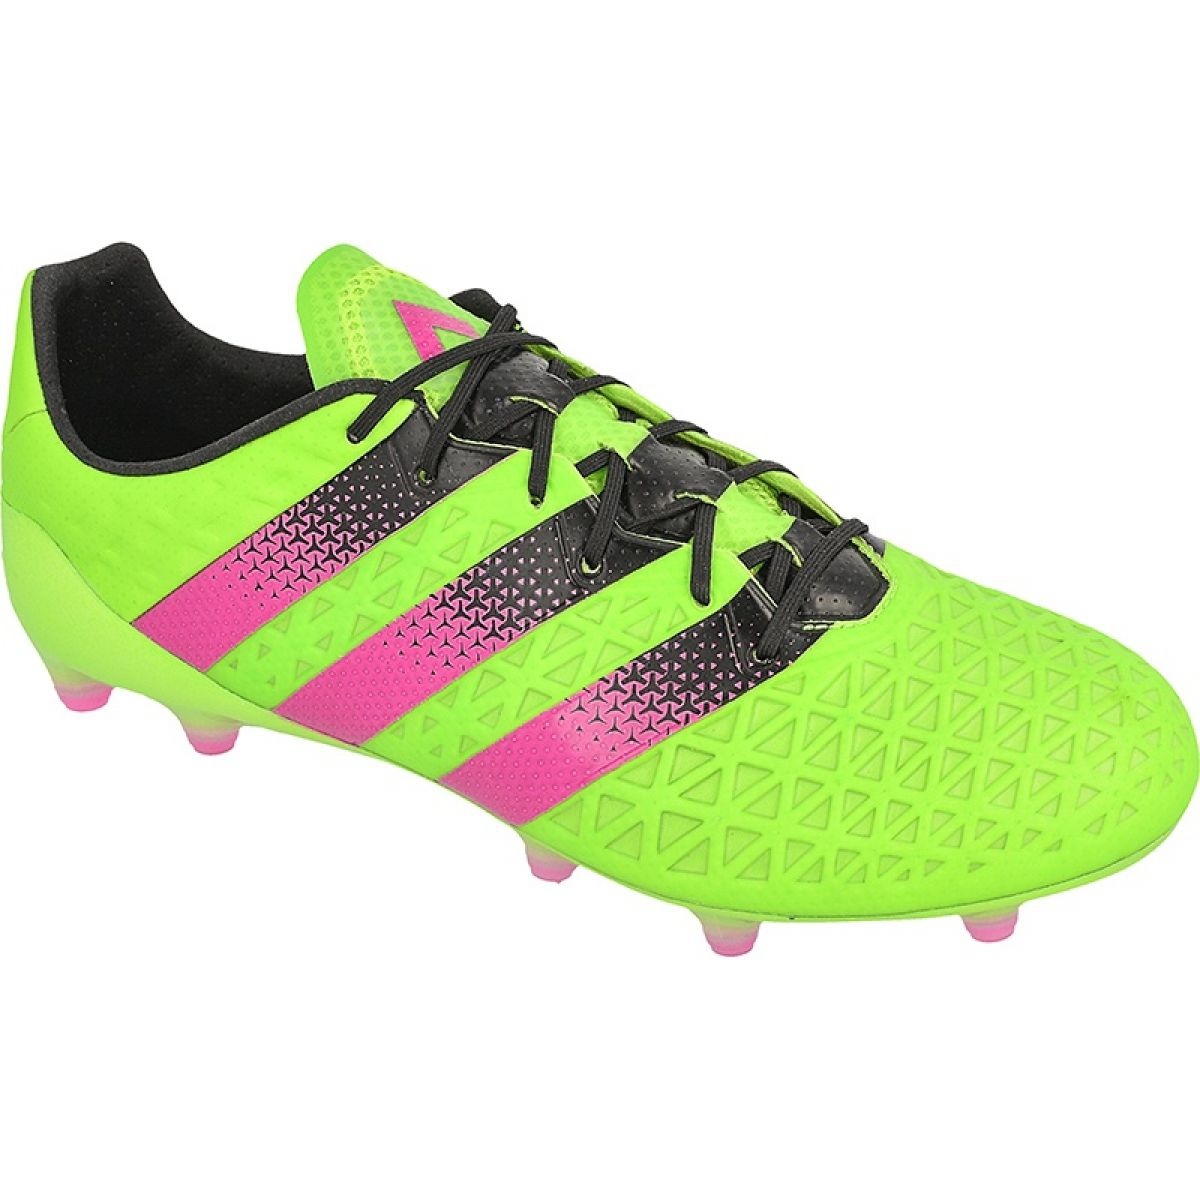 Repetirse Identidad Detector  Adidas Ace 16.1 FG / AG M AF5083 football shoes green green - ButyModne.pl